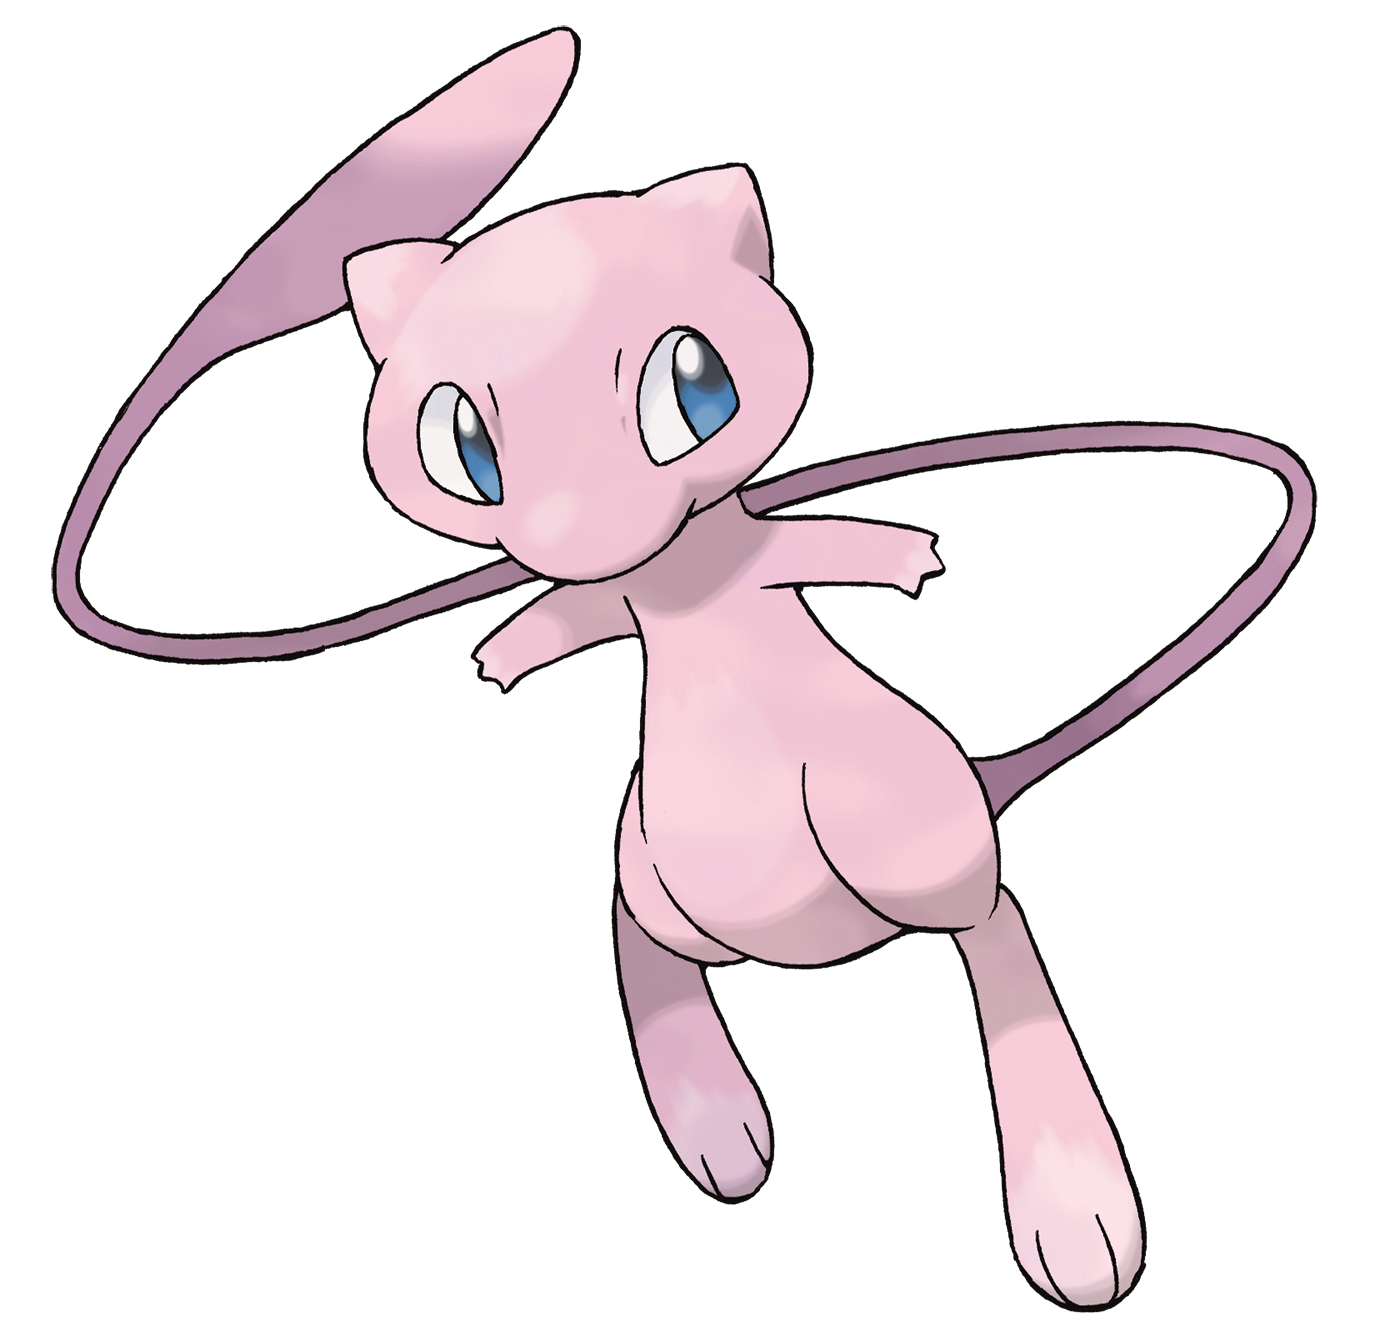 Categoryarticles Needing More Information Pokémon Wiki